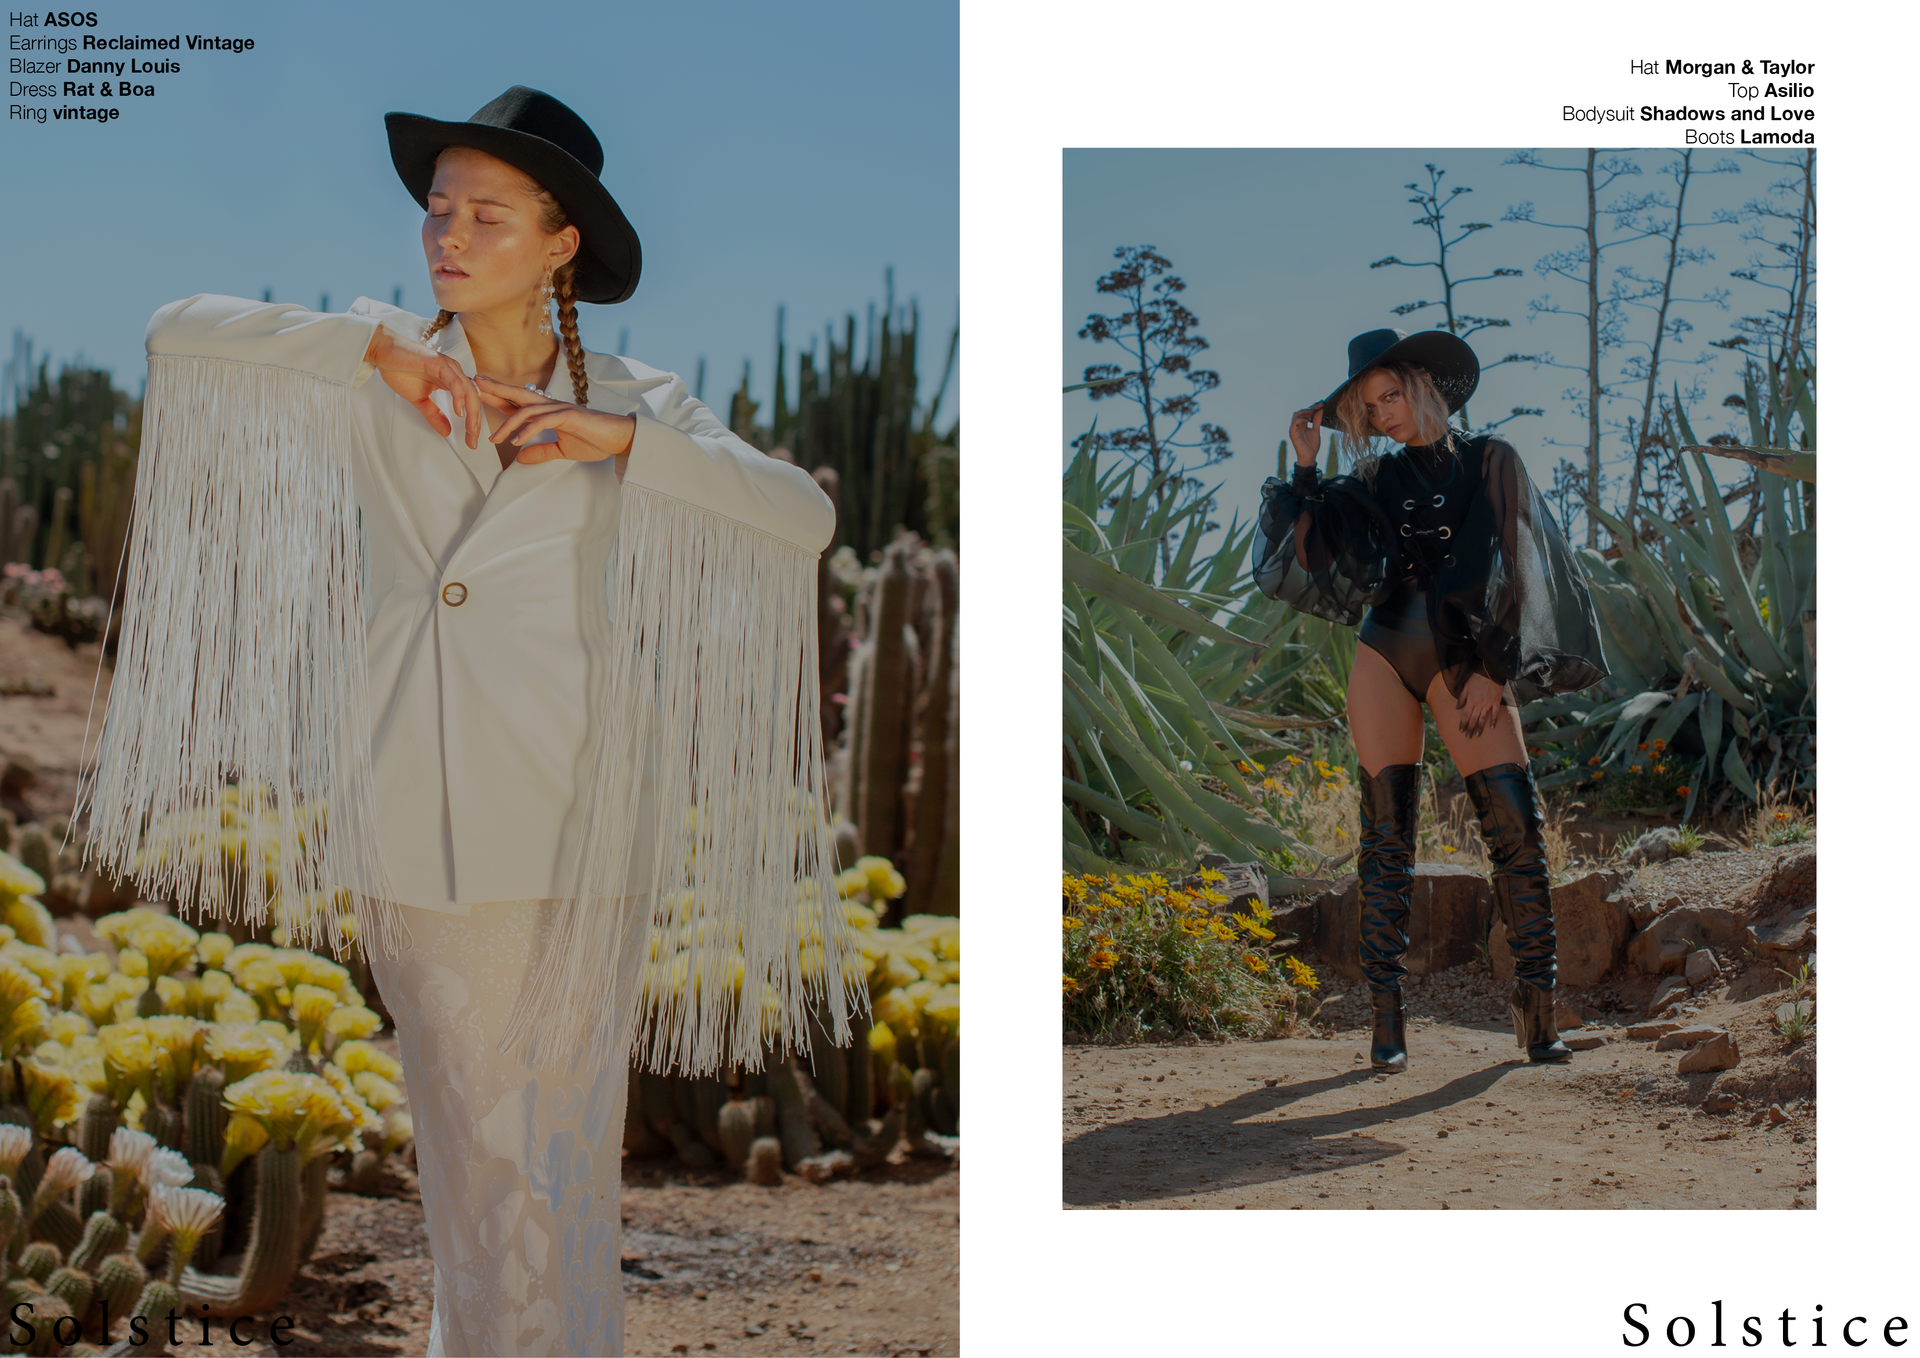 Maria Heiss Webitorial2.png